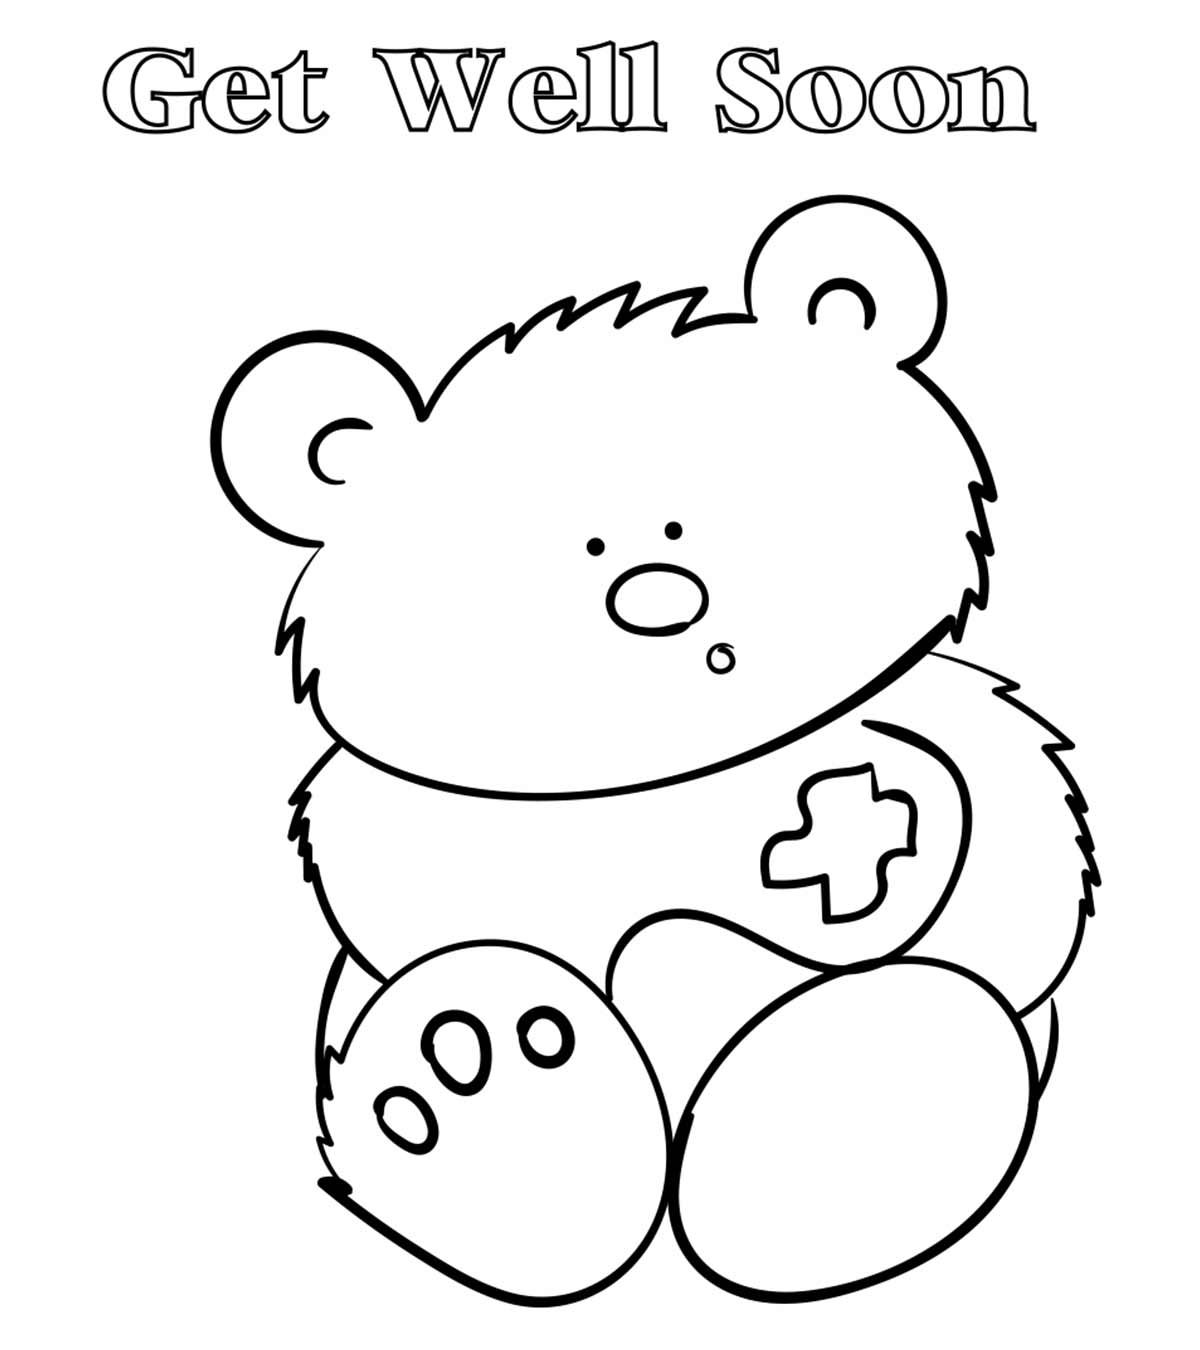 Top 25 Free Printable Get Well Soon Coloring Pages Online Regarding Get Well Soon Card Template Professional Templ Get Well Cards Disney Colors Card Template